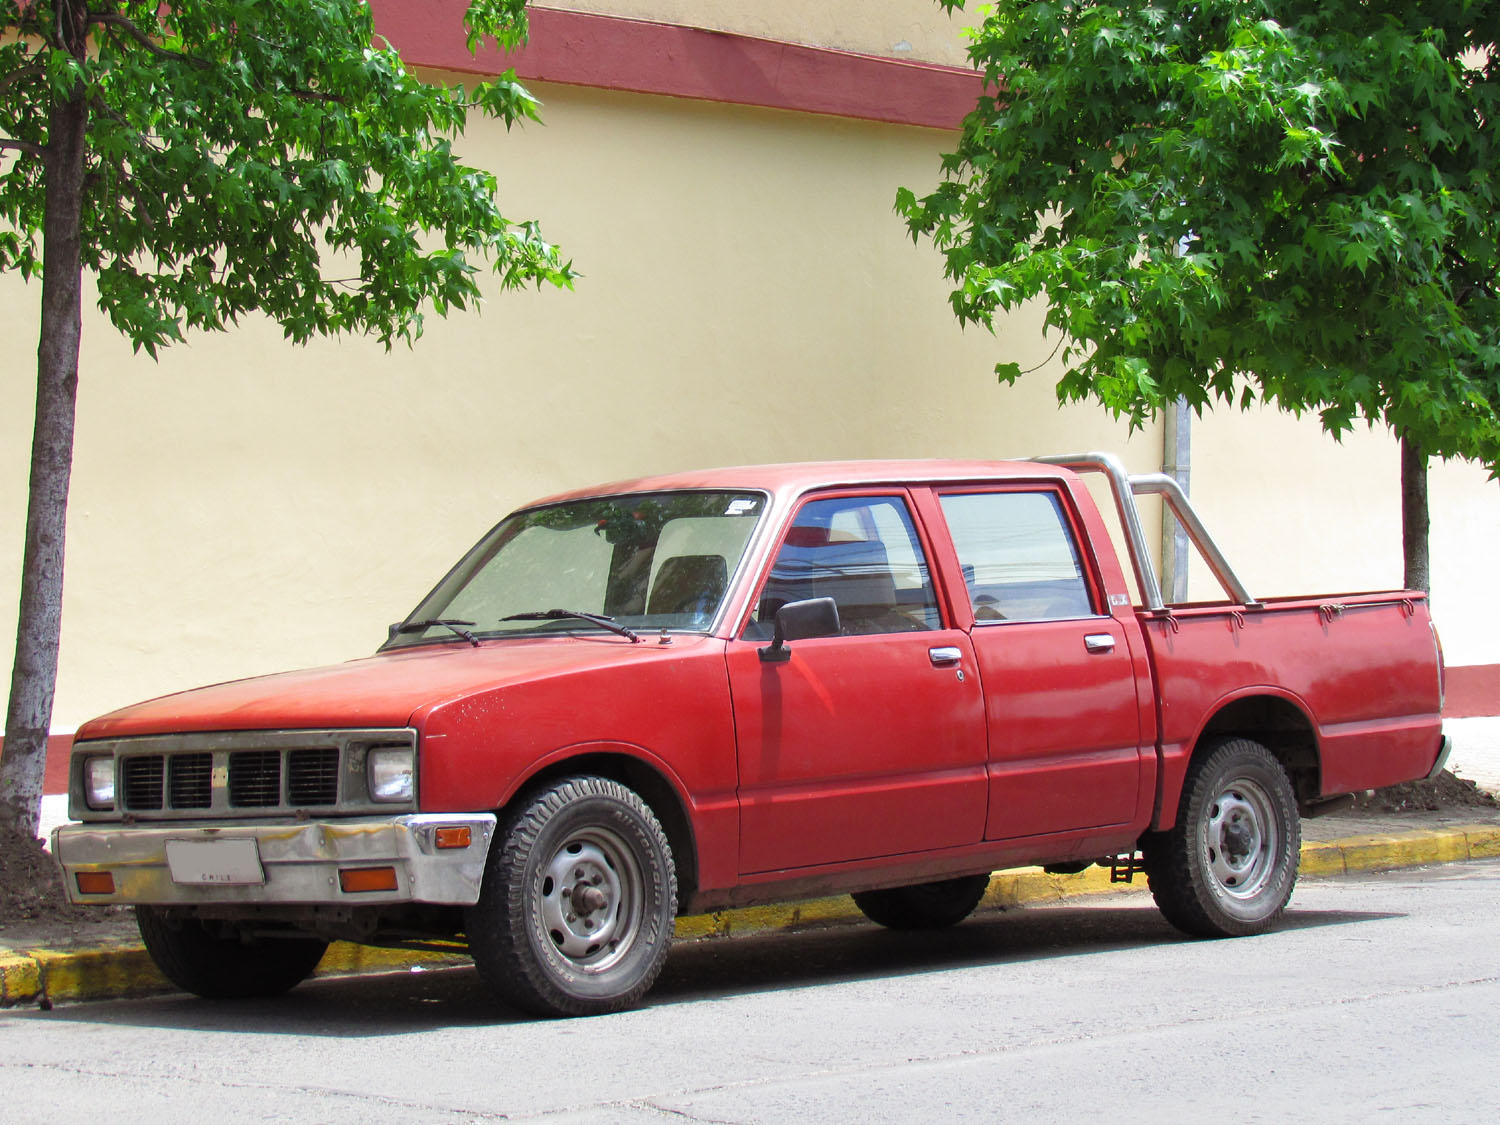 Chevrolet Luv 23 Crew Cab, Photo #2